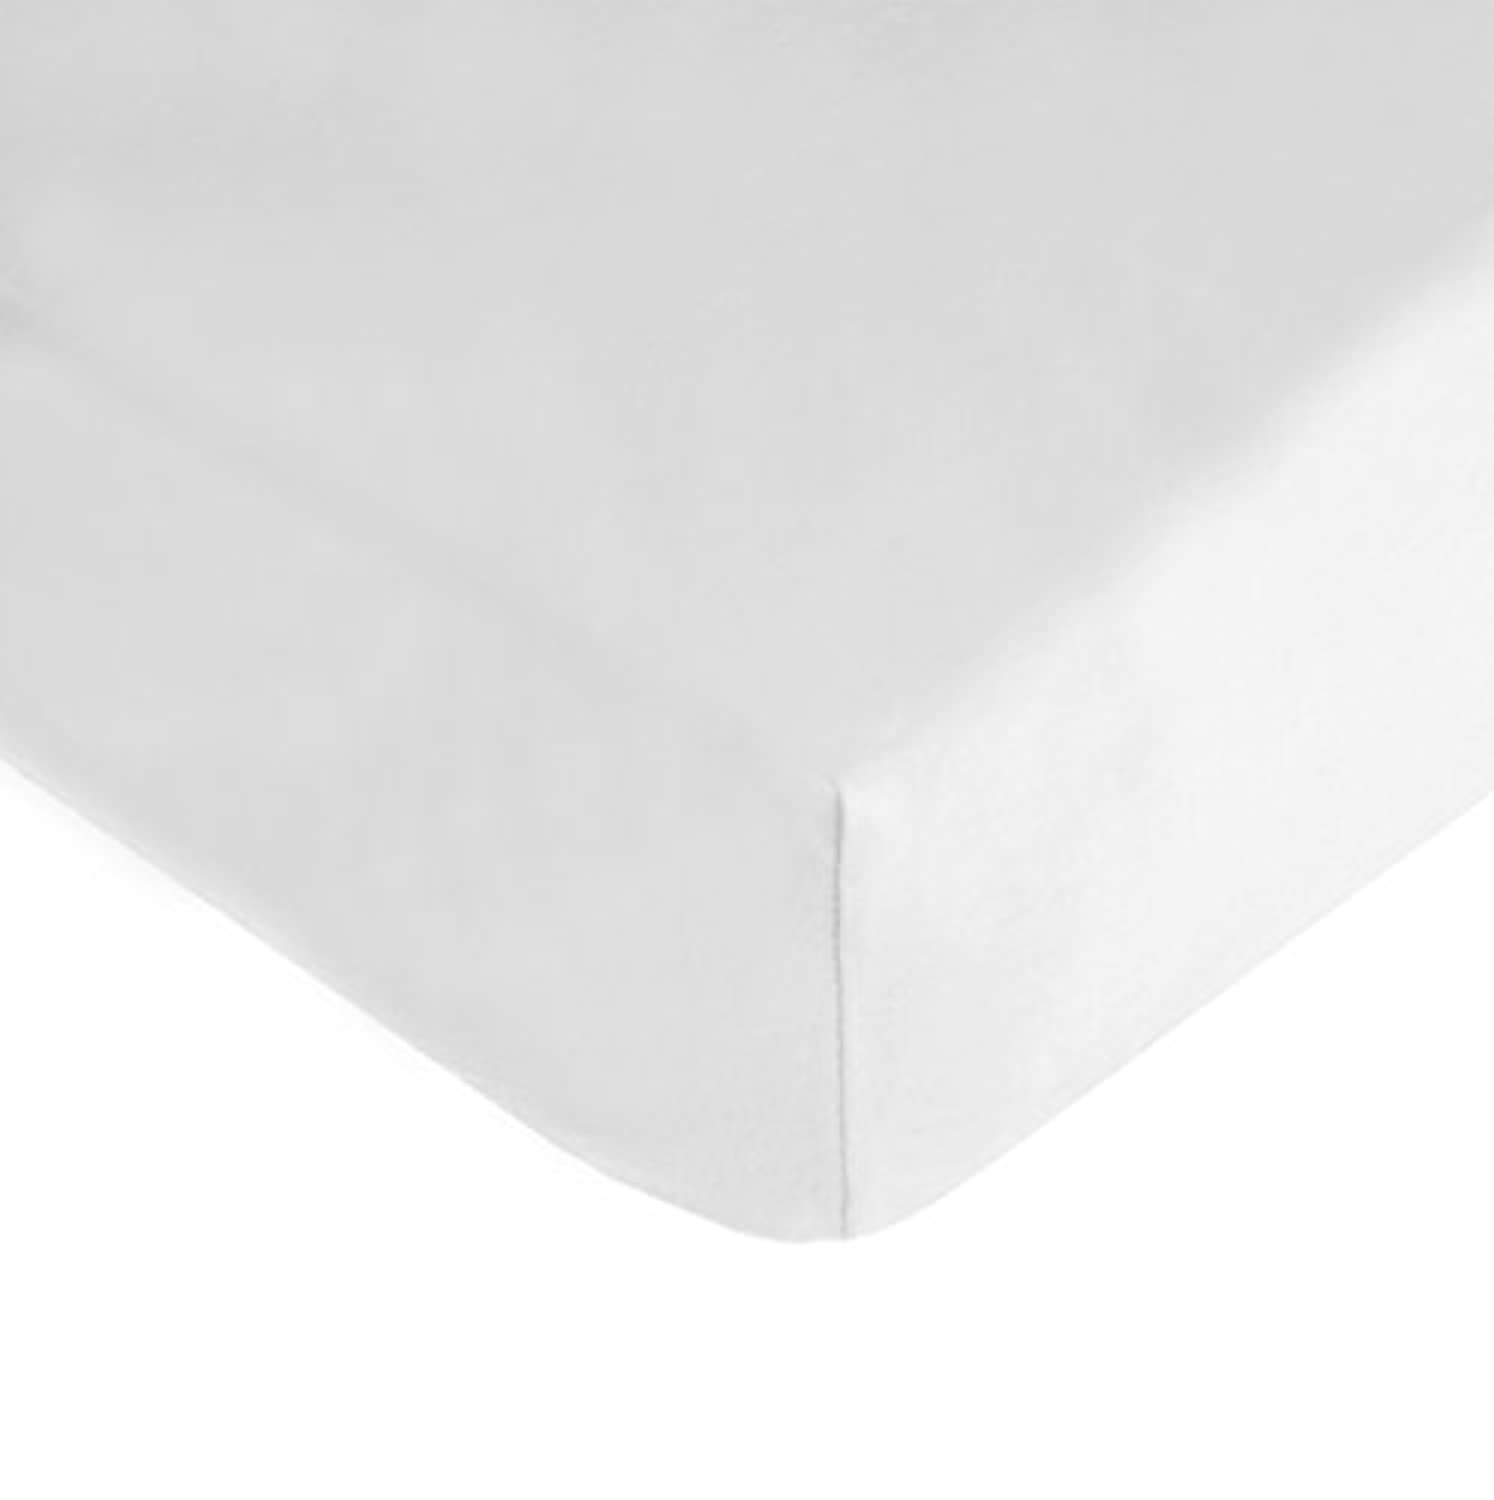 American Baby Company 100% Cotton Value Jersey Knit Crib Sheet, White by American Baby Company [並行輸入品]